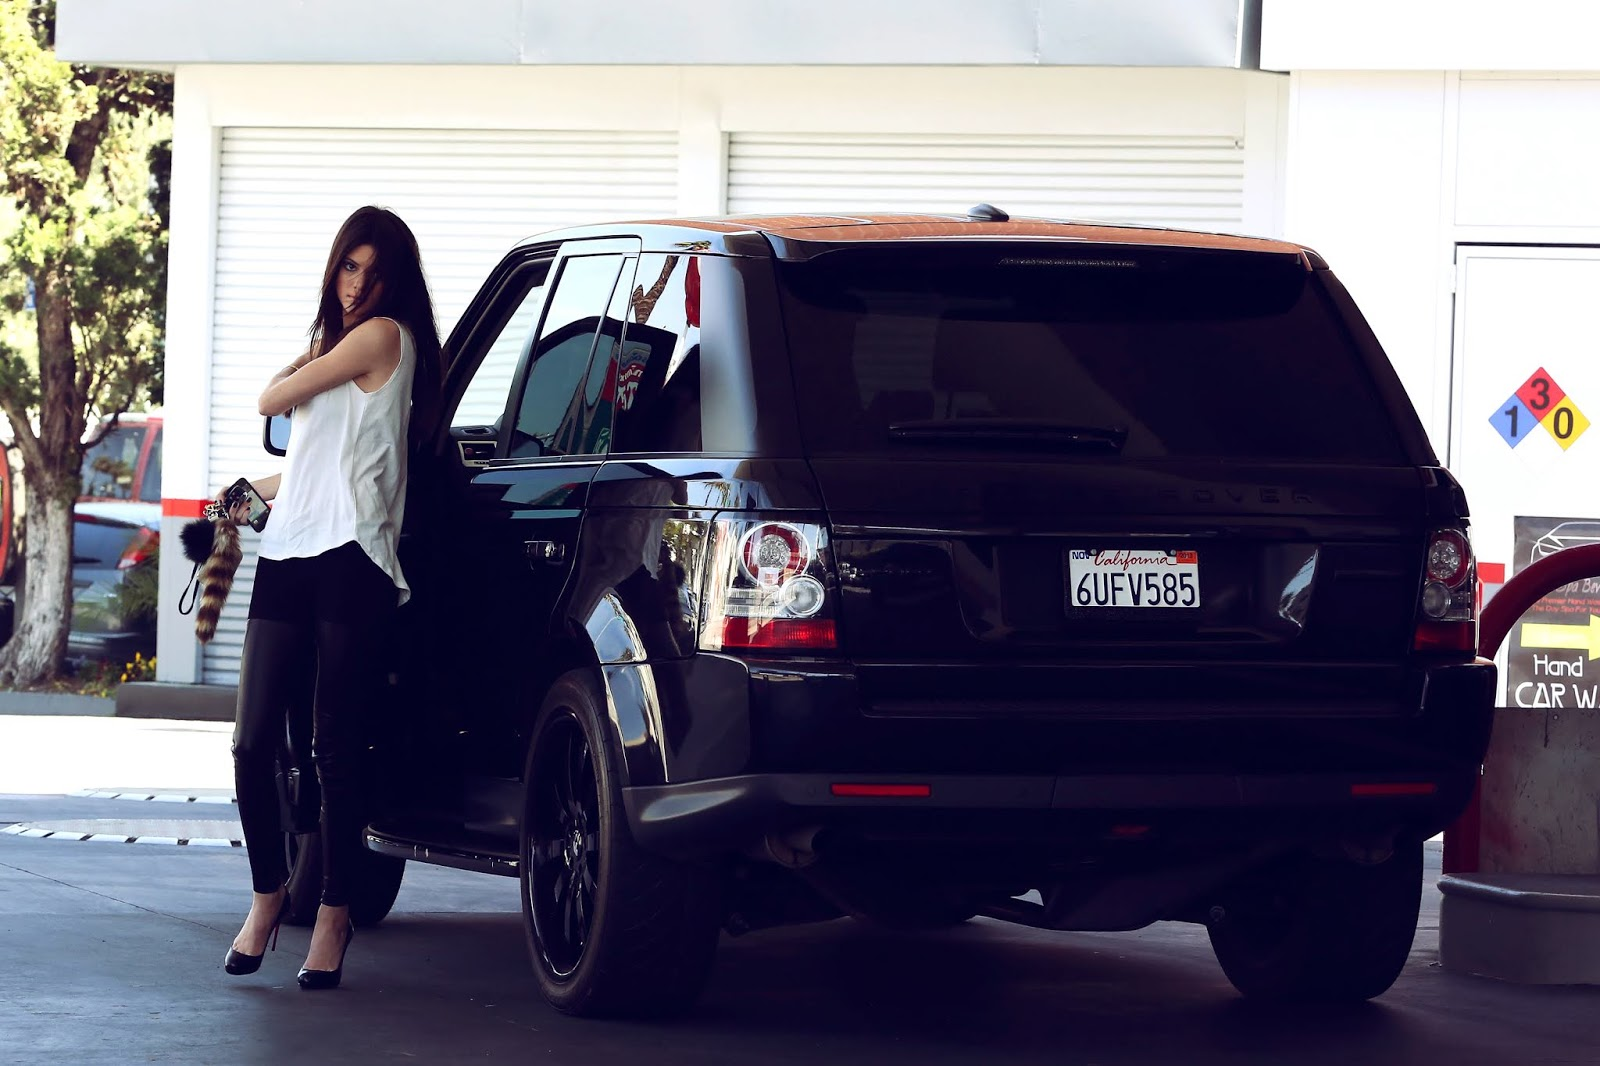 - Out & About in Los Angeles California on April 11t, 2012